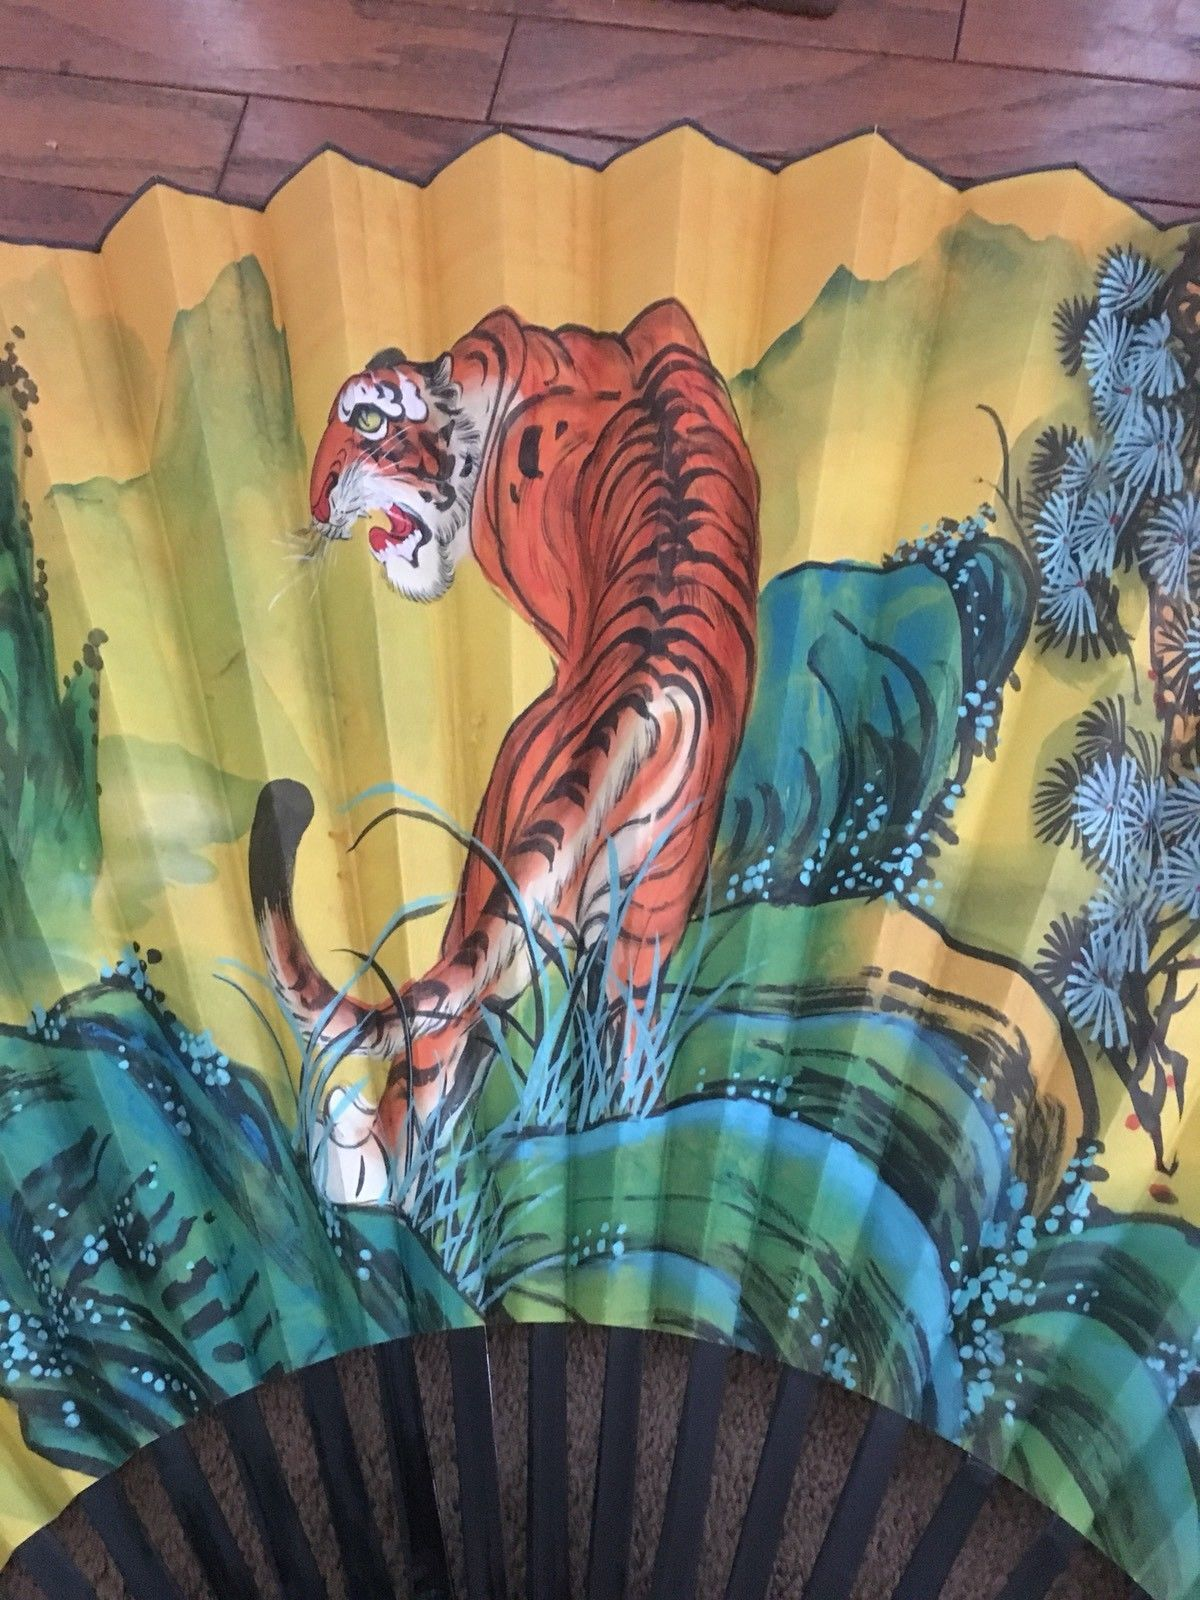 09fb7606a Vintage SIGNED Large Chinese Wall Fan - HP Tiger in Jungle Setting - 70